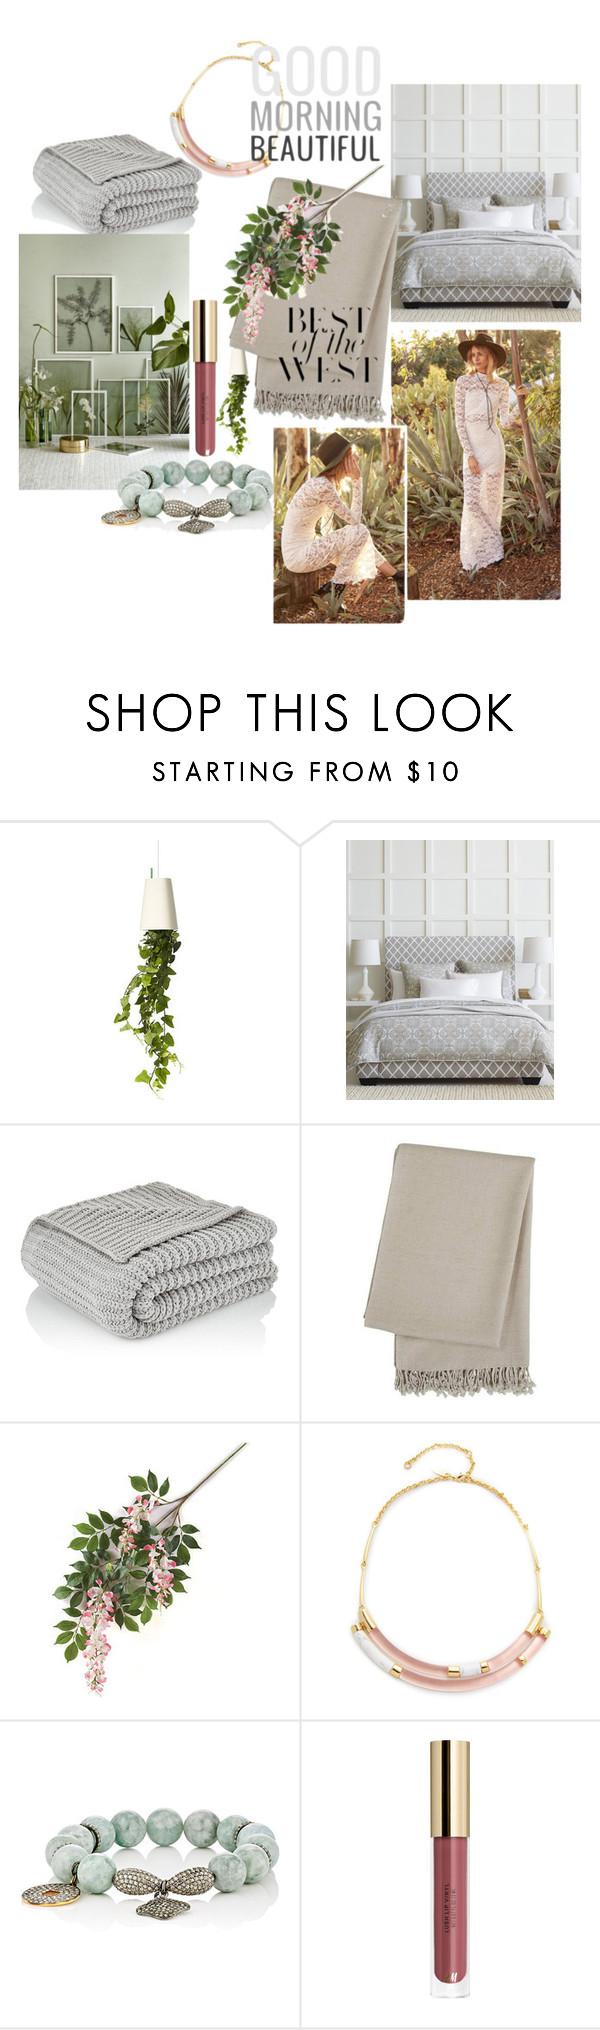 """""""Untitled #3526"""" by mariaisabel701 ❤ liked on Polyvore featuring Boskke, Serena & Lily, M&S, HUGO, Alexis Bittar, Carole Shashona and mothersdaygiftguide"""